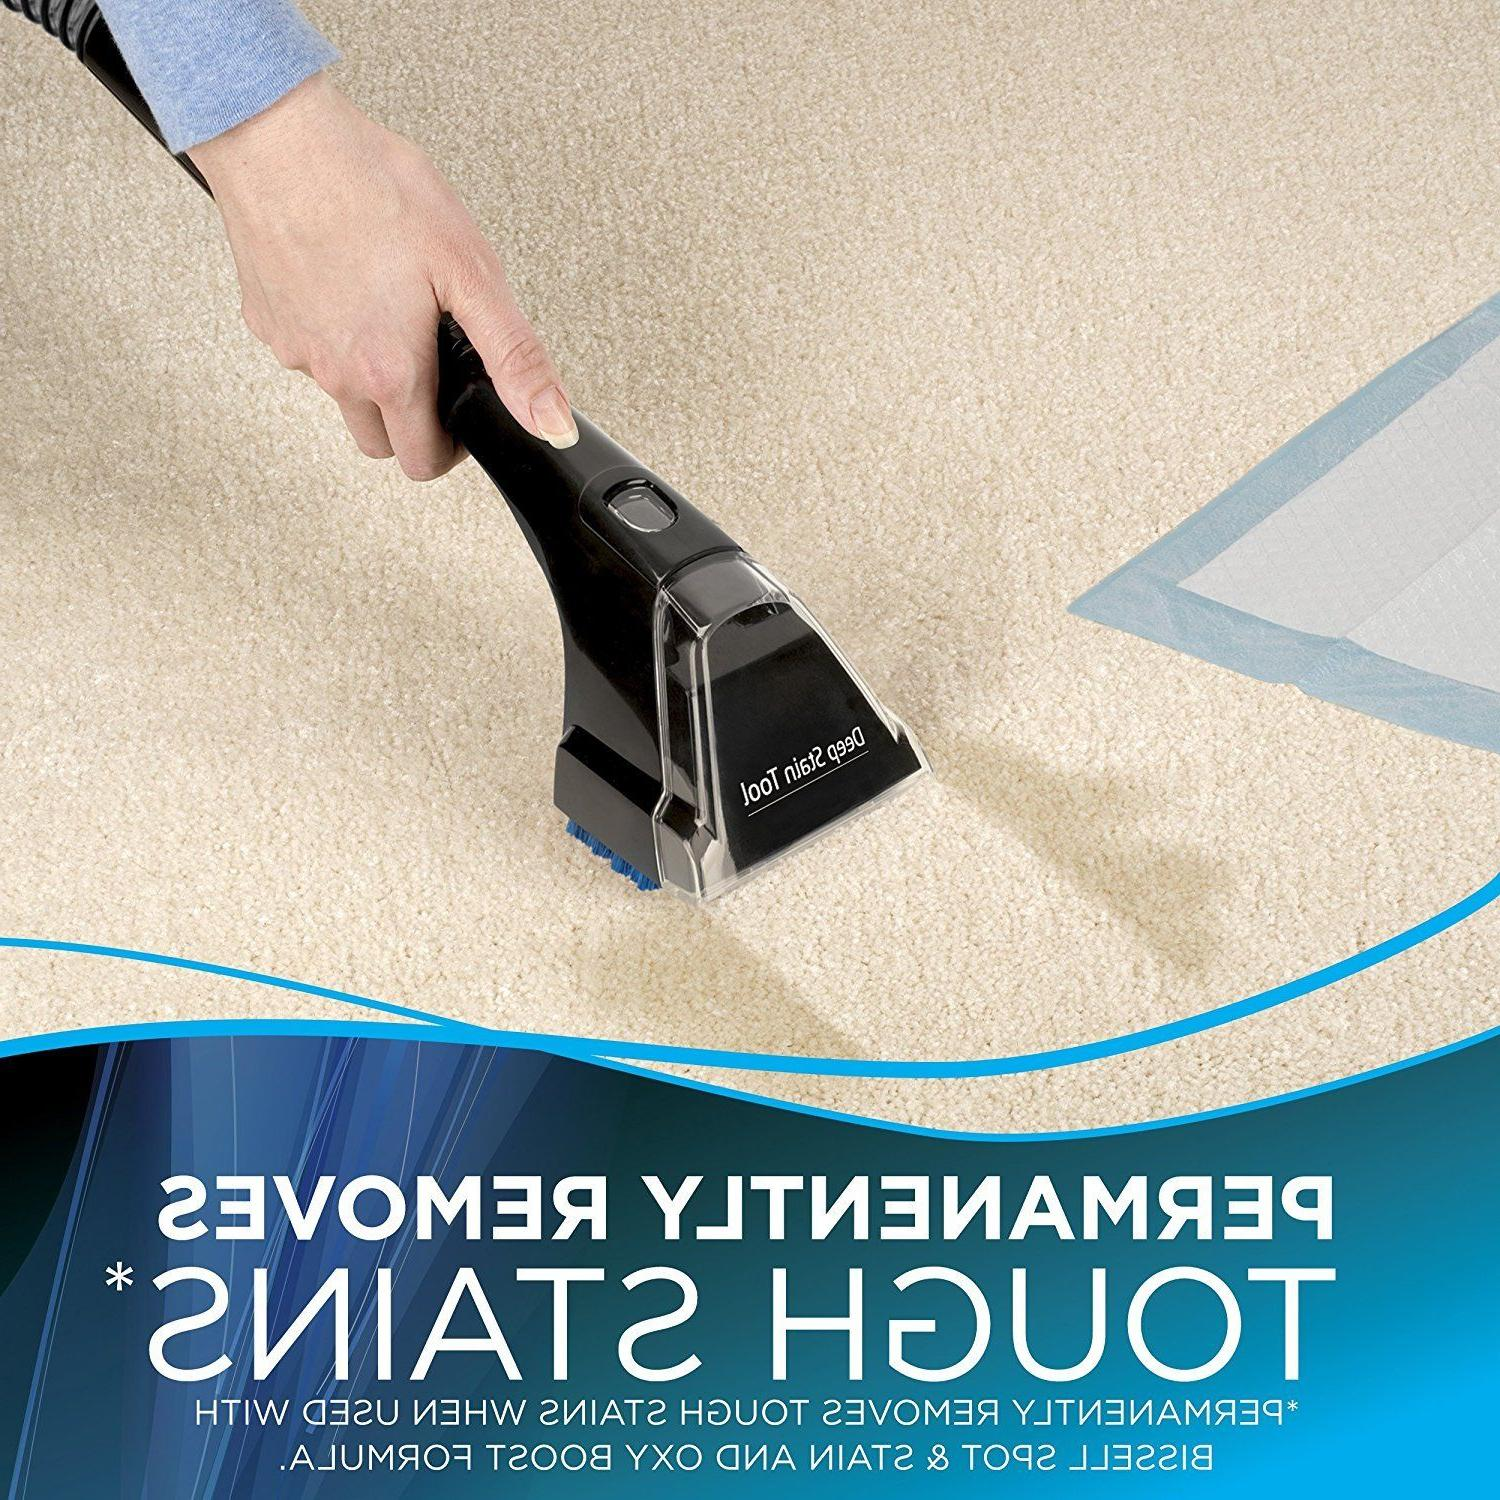 Bissell Carpet Portable Cleaner Spot Cleaning Heat